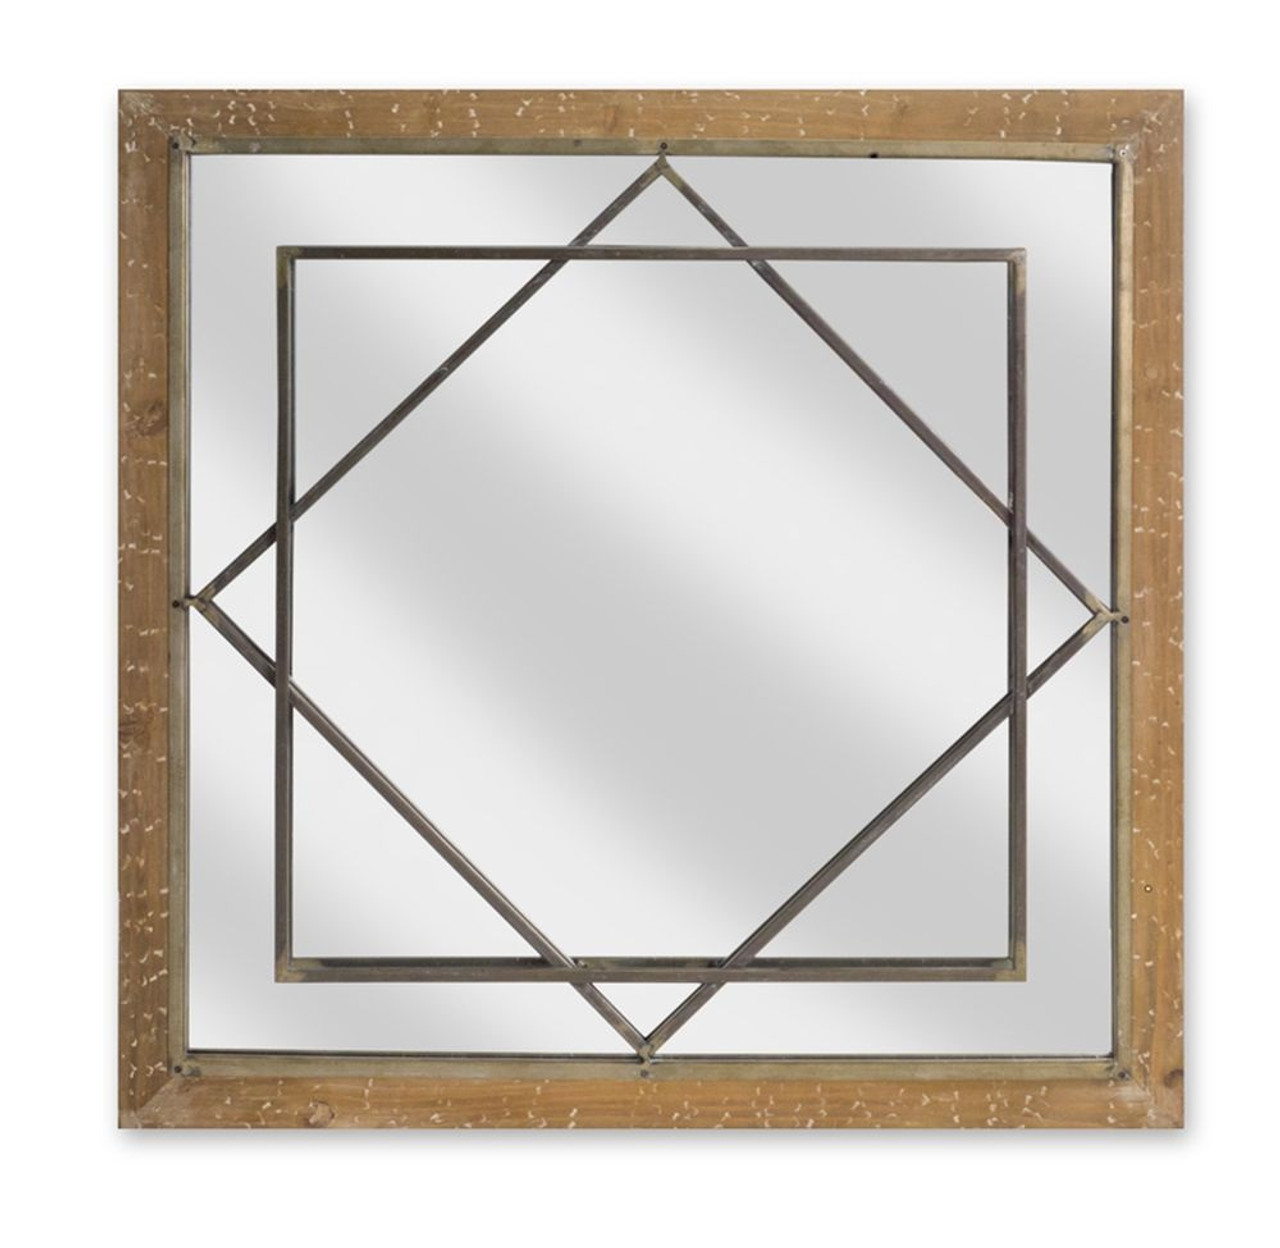 25 Contemporary Square Wooden With Metal Detail Decorative Wall Mirror 32781582